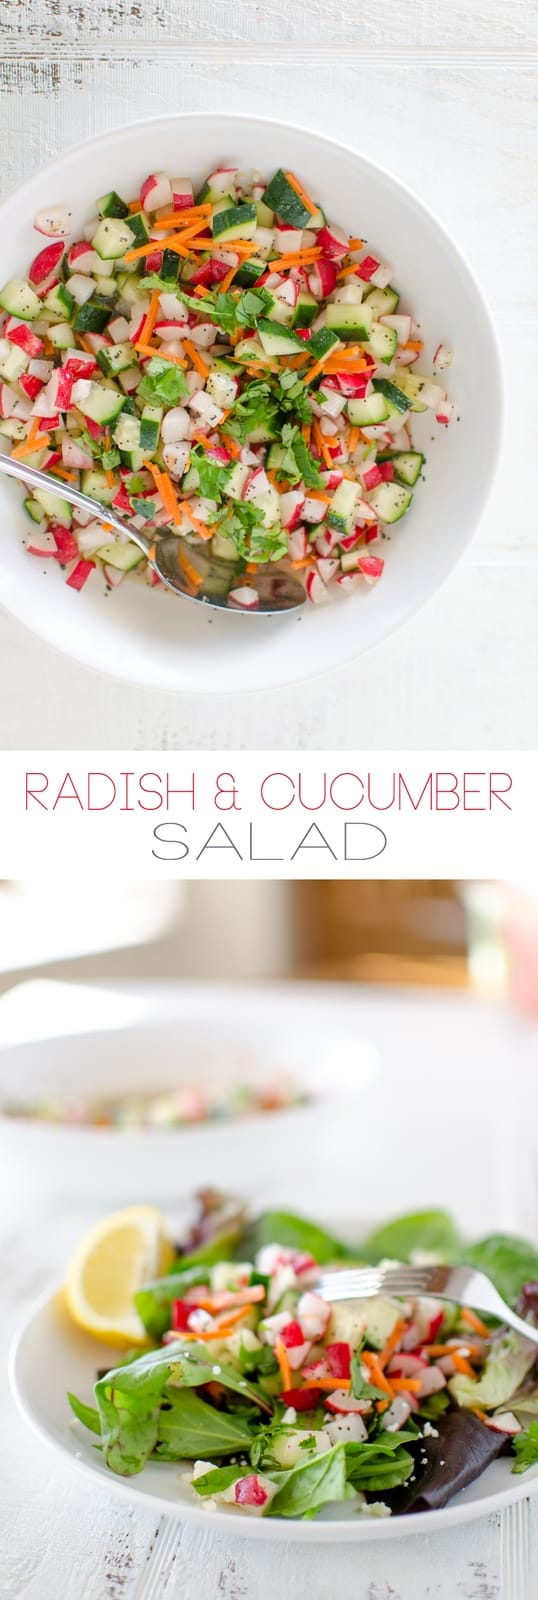 Radish-and-Cucumber-Salad-Collage